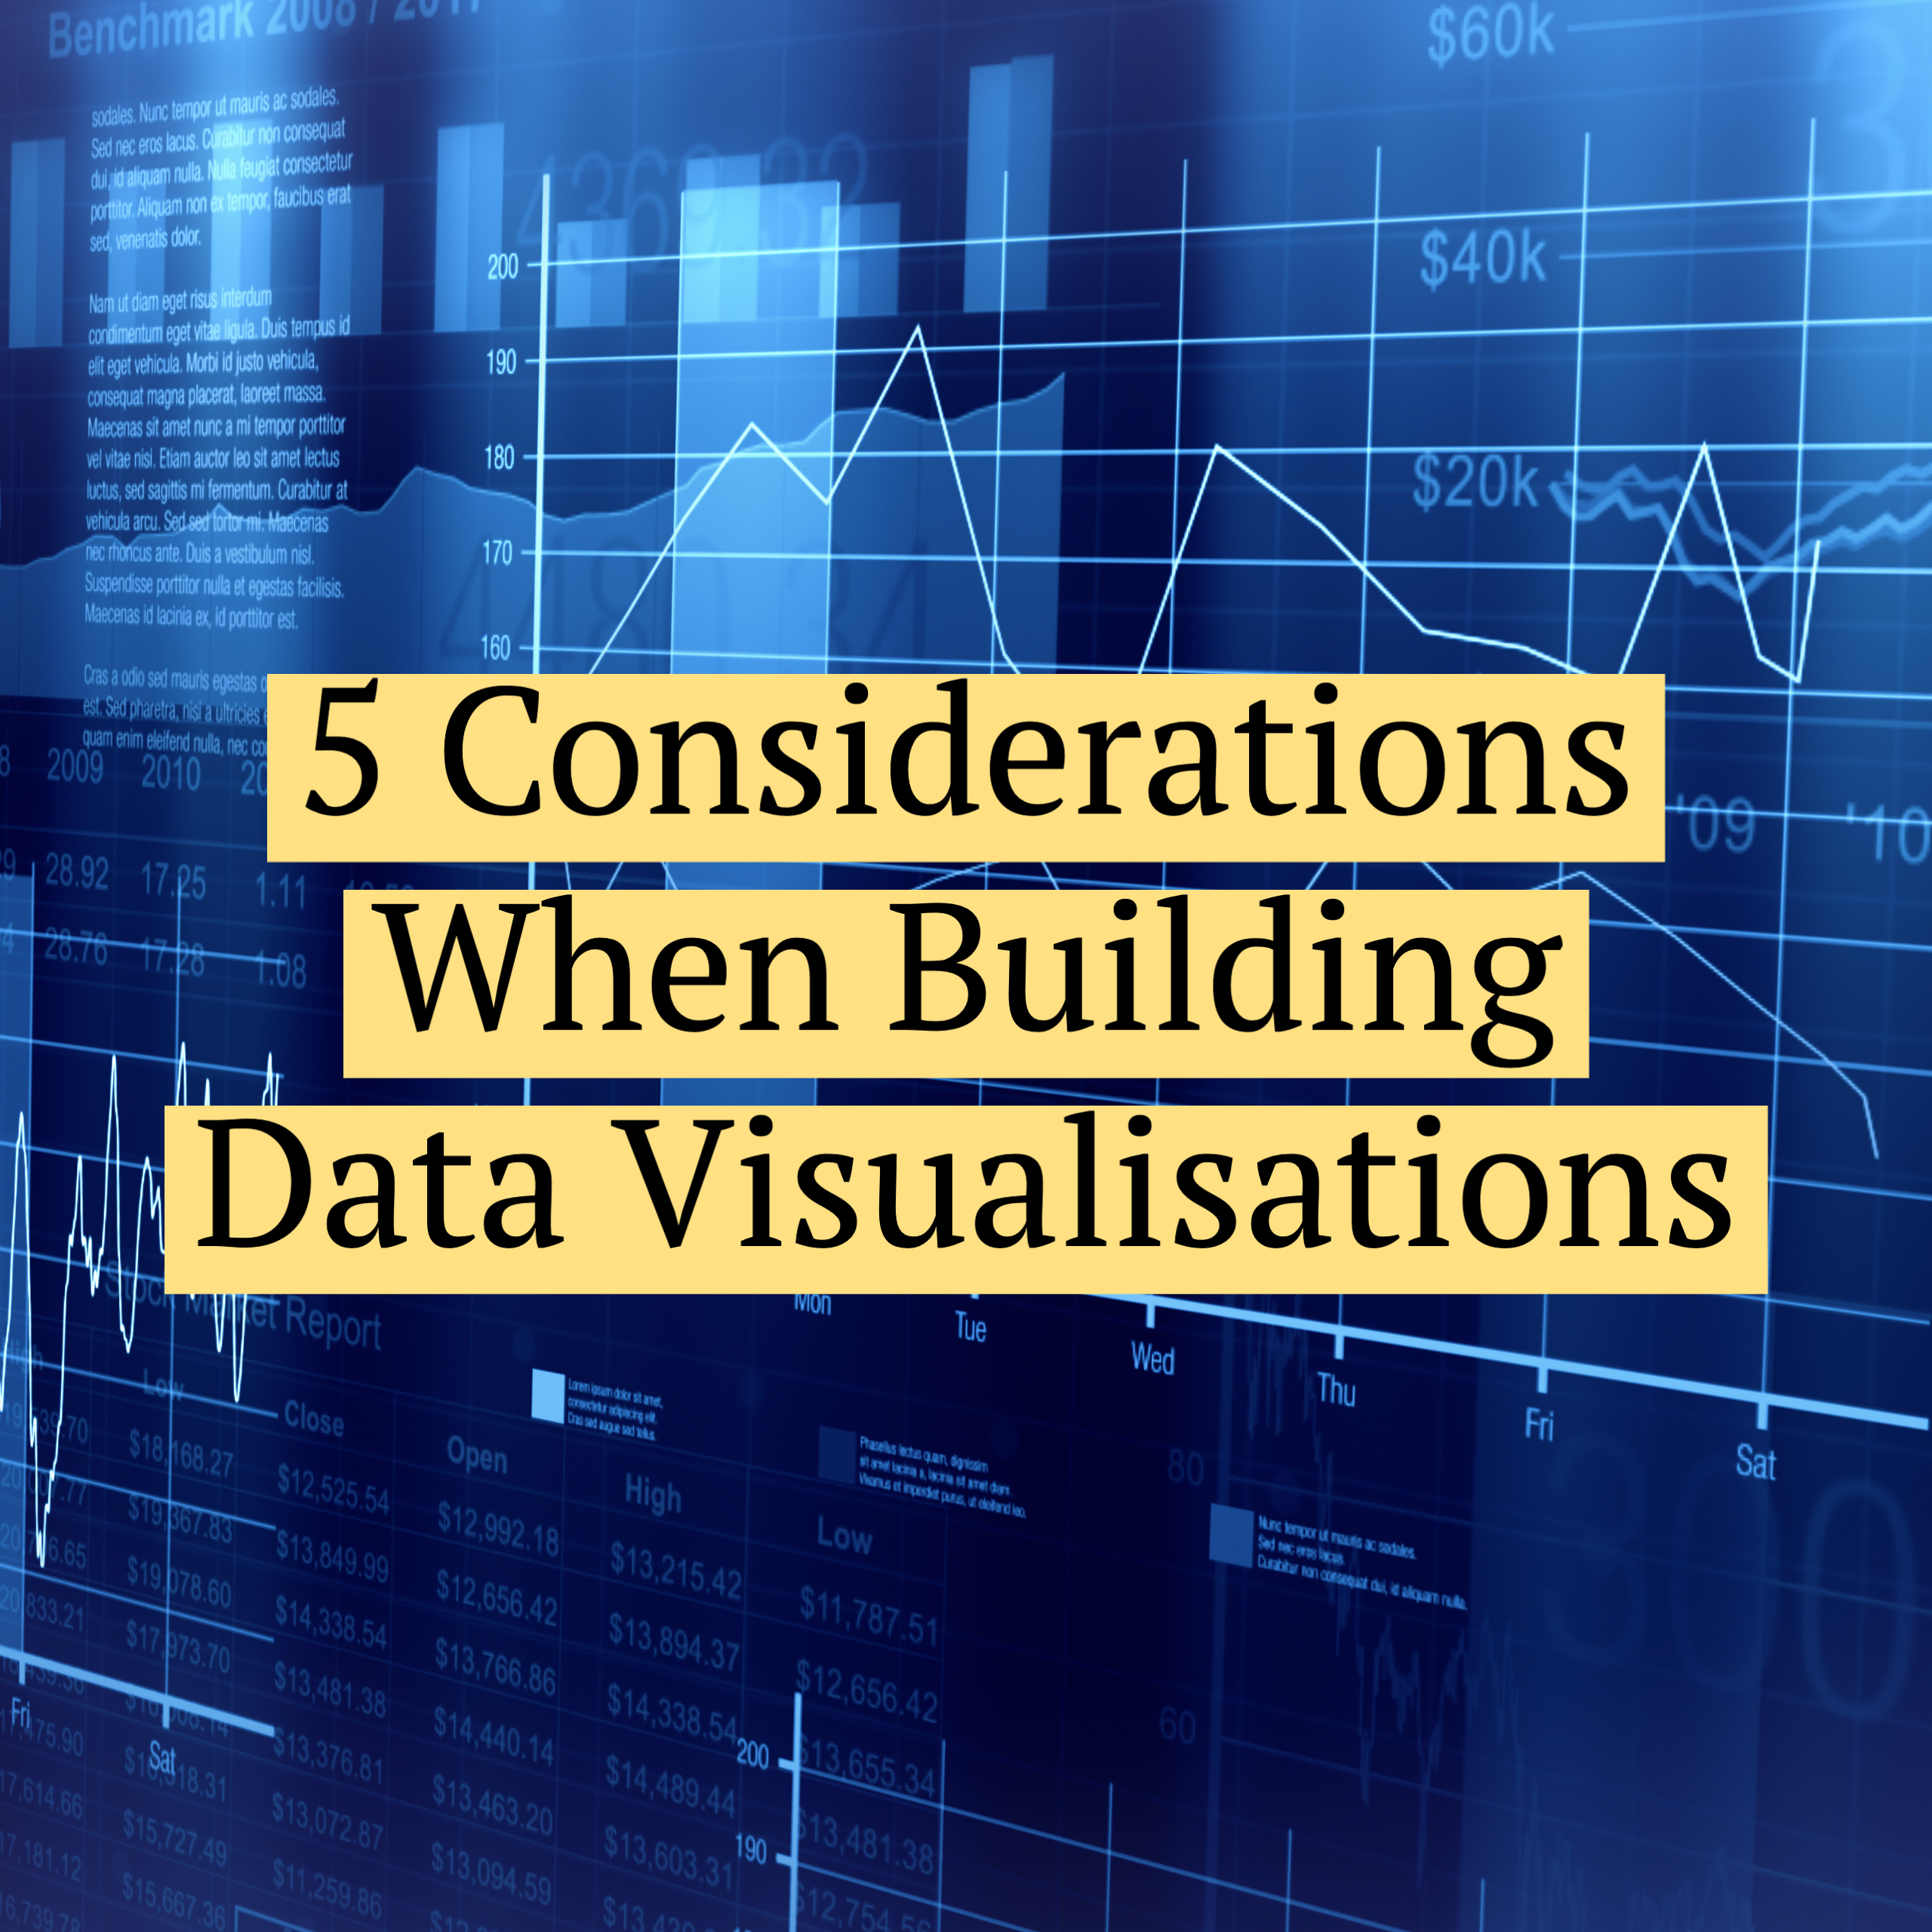 Data backgorund with '5 COnsiderations When Building Data Visualisations' text